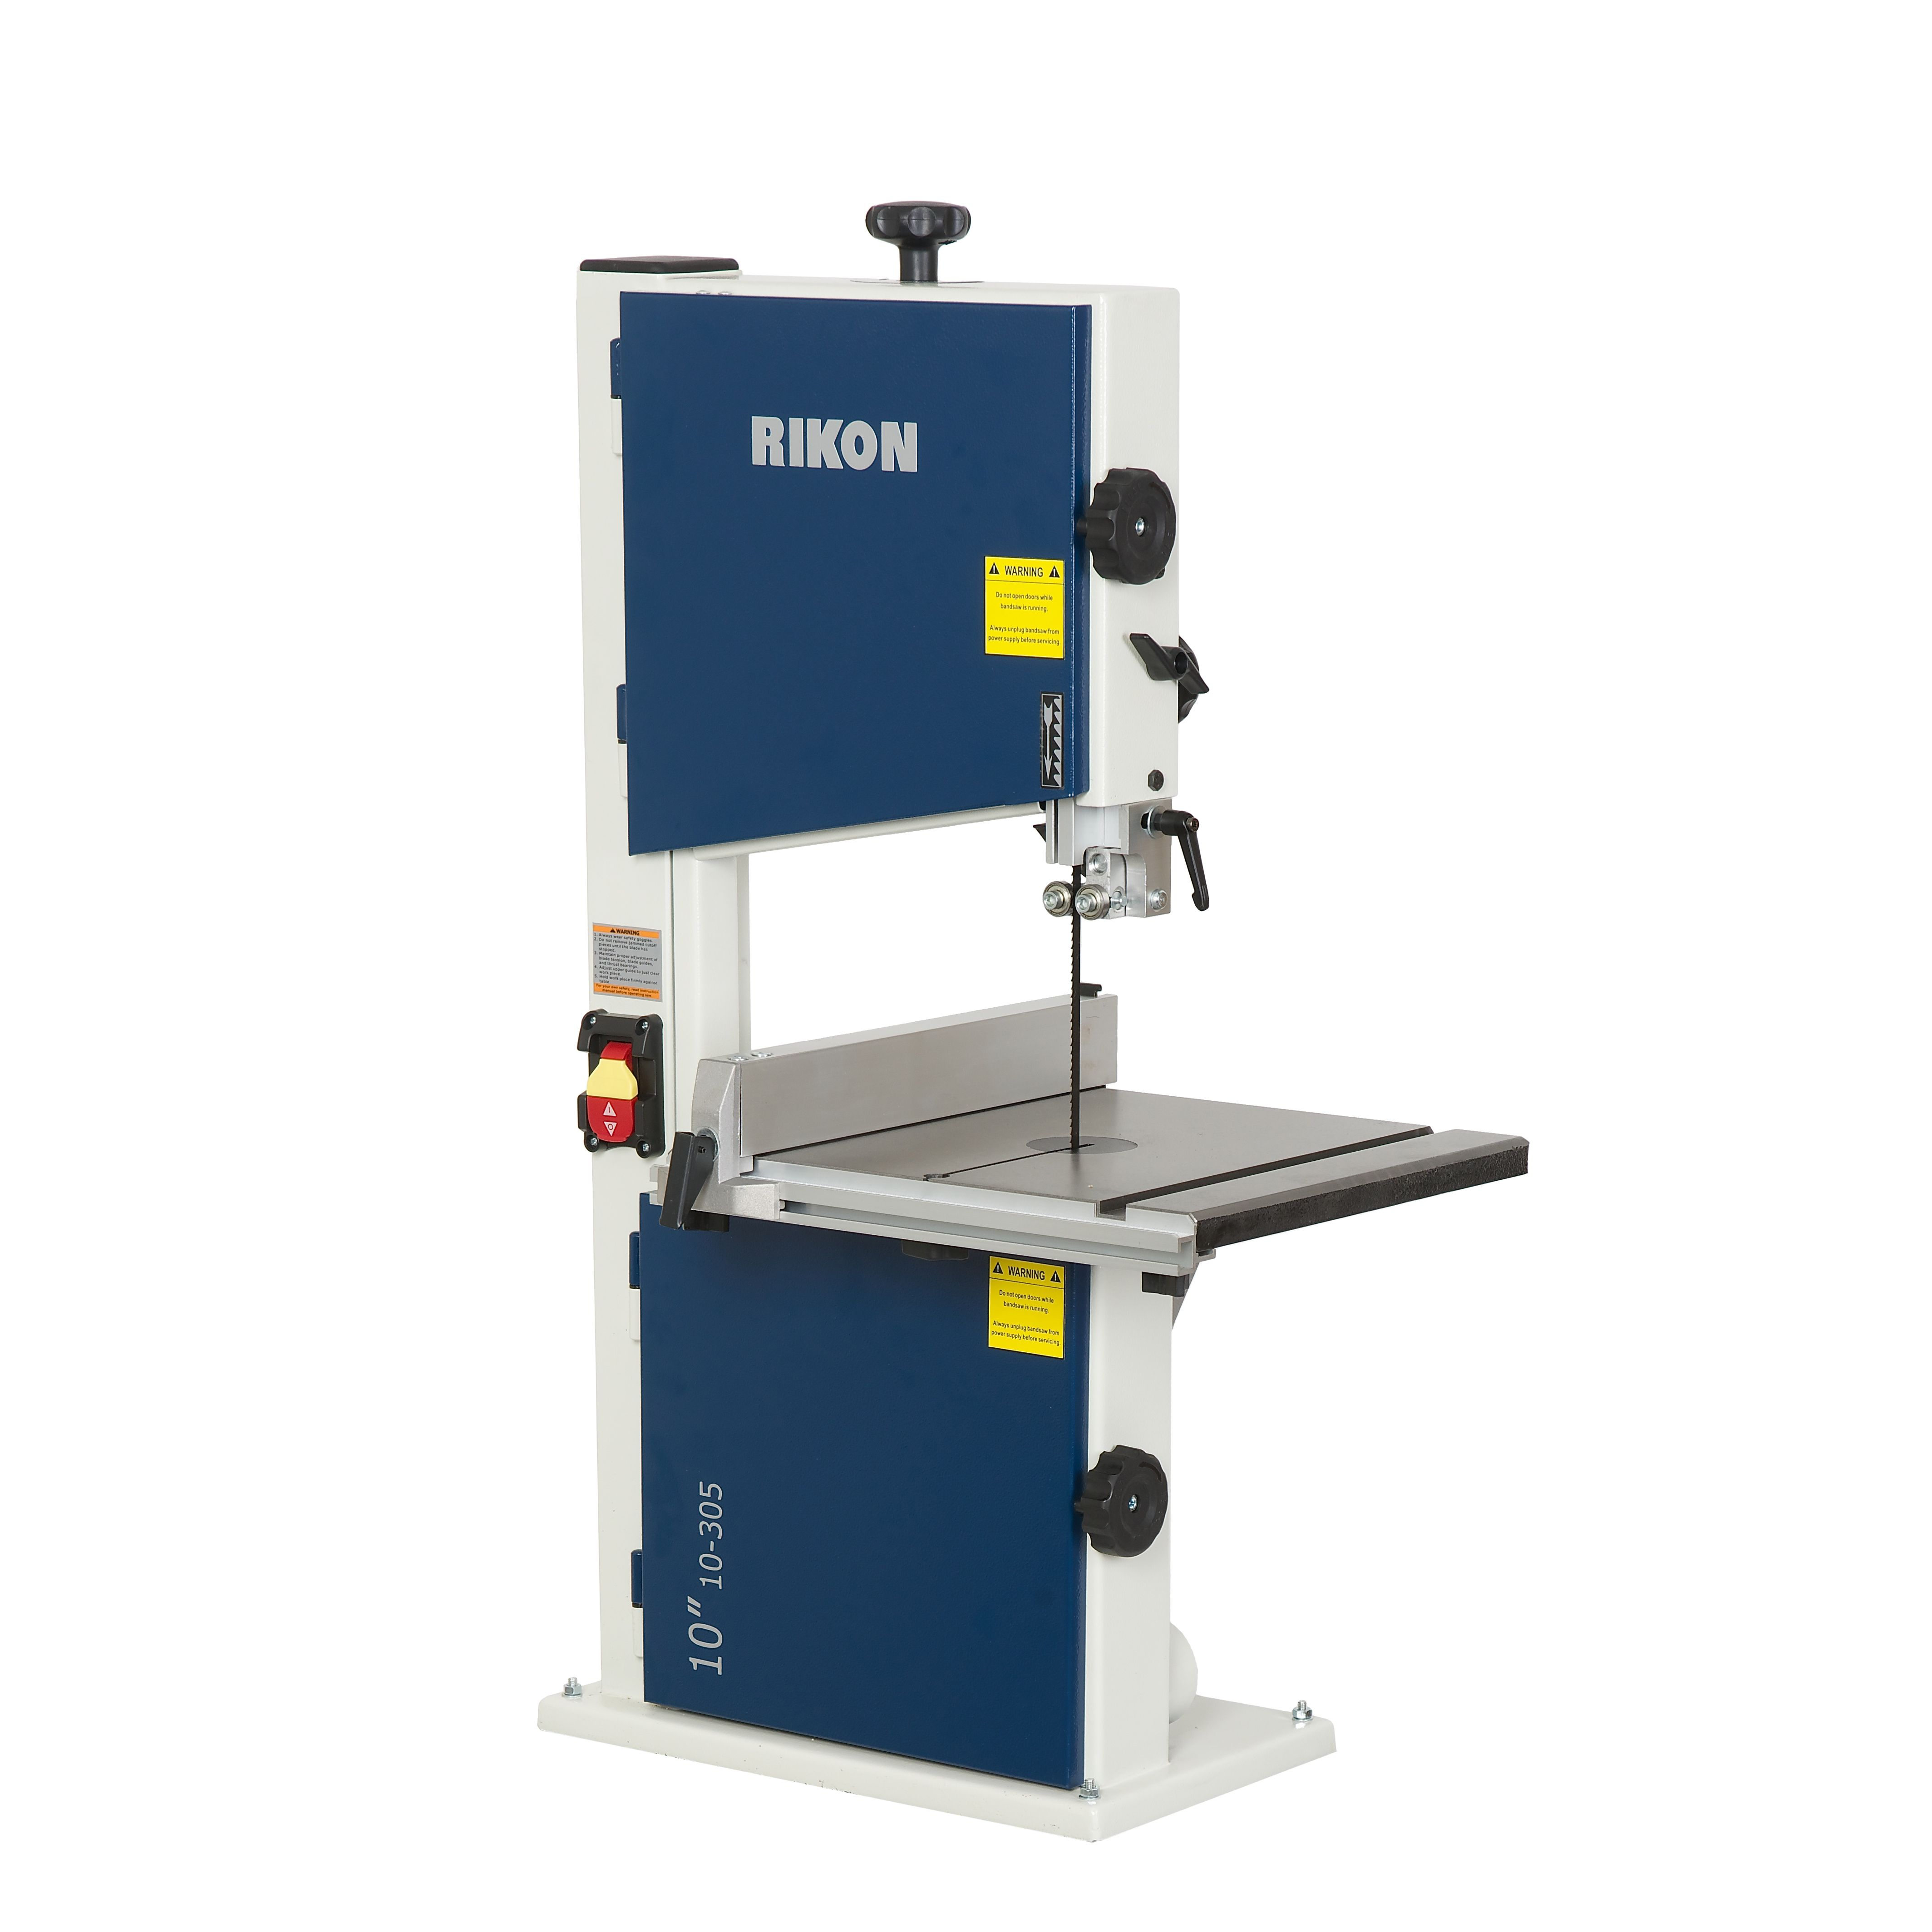 Rikon 10 Inch Bandsaw 10 305 Walmart Com Diy Table Saw Table Saw Portable Band Saw